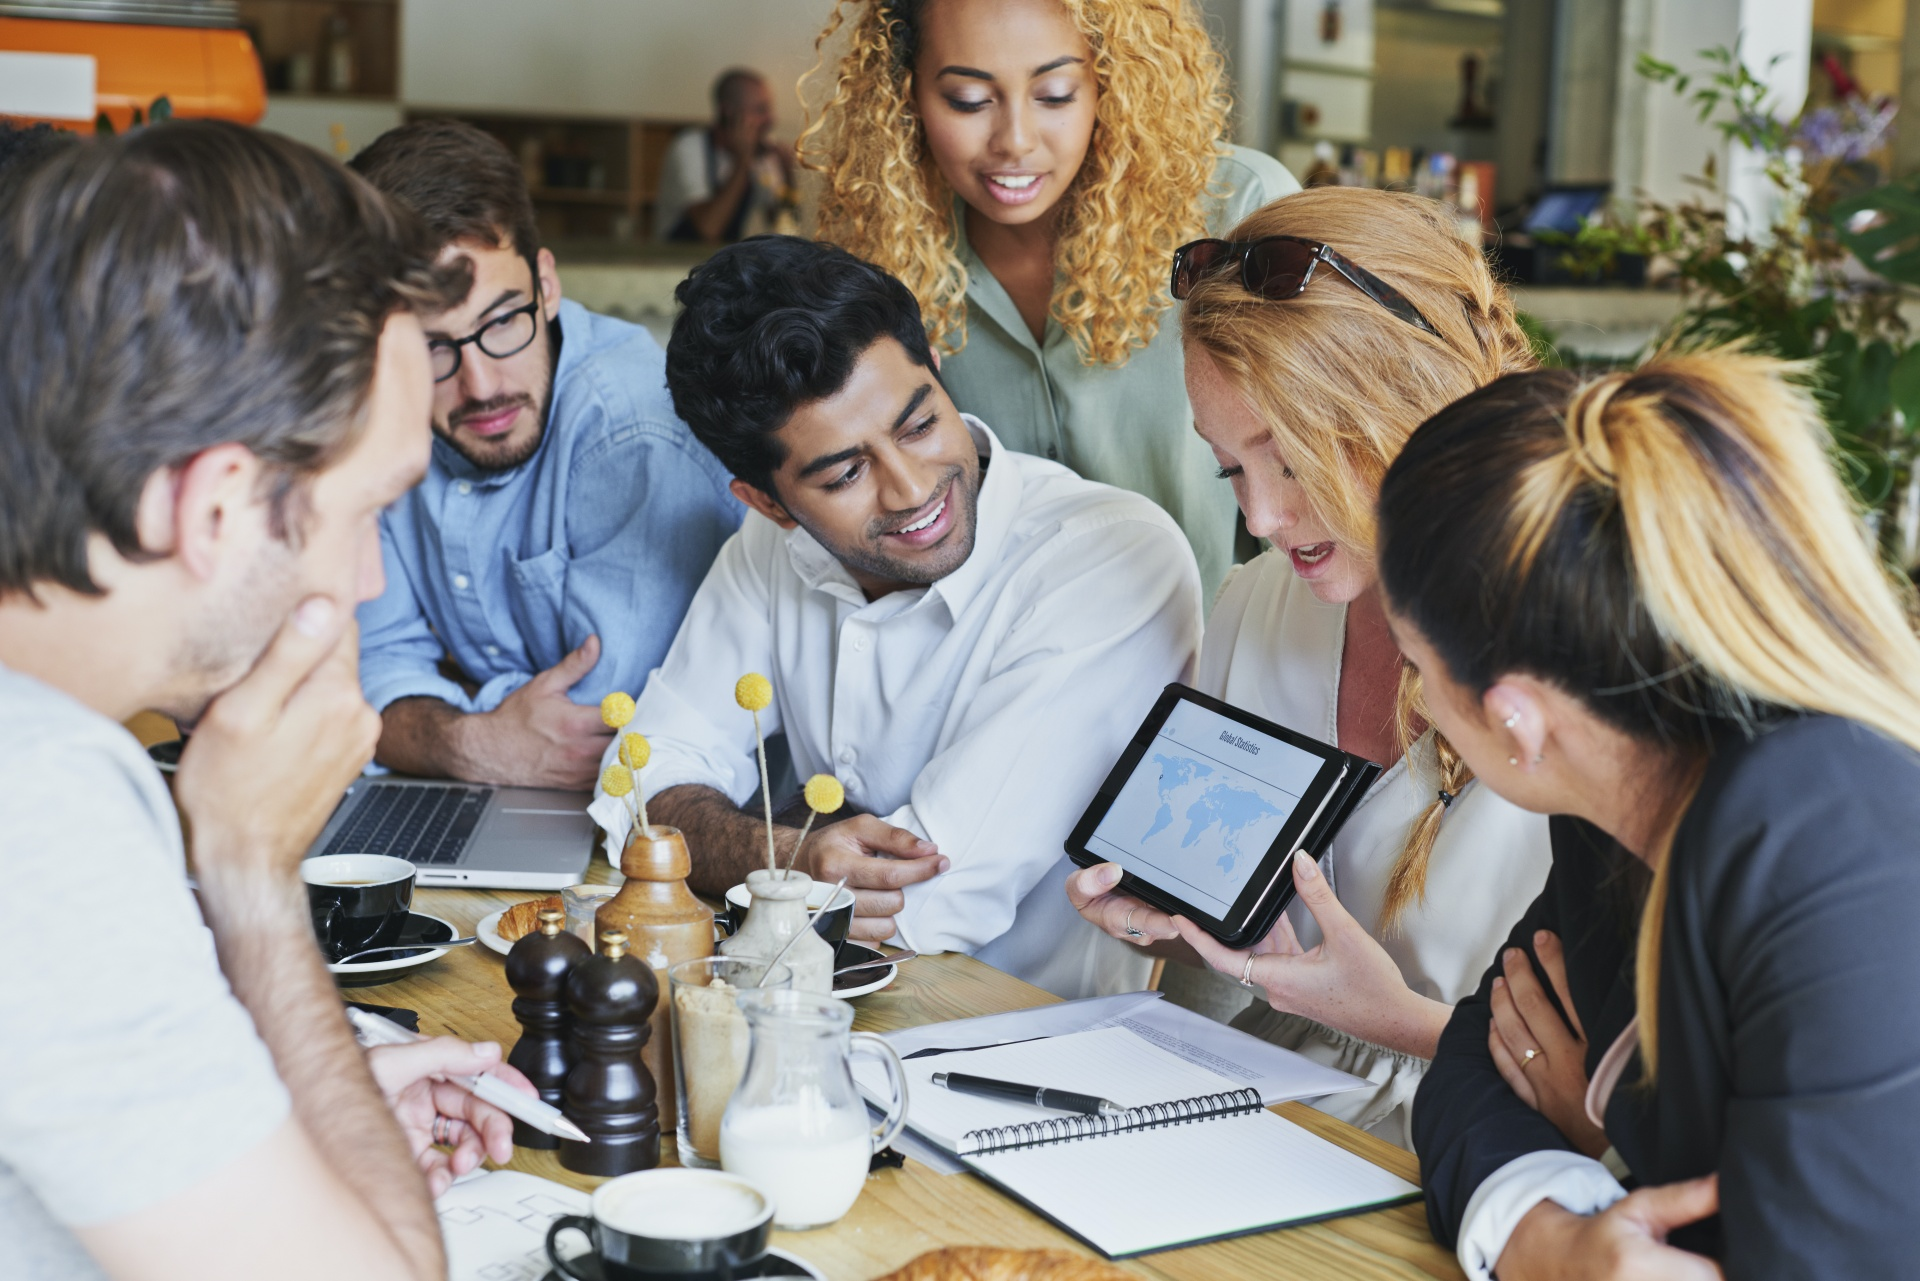 Group of coworkers looking at a tablet